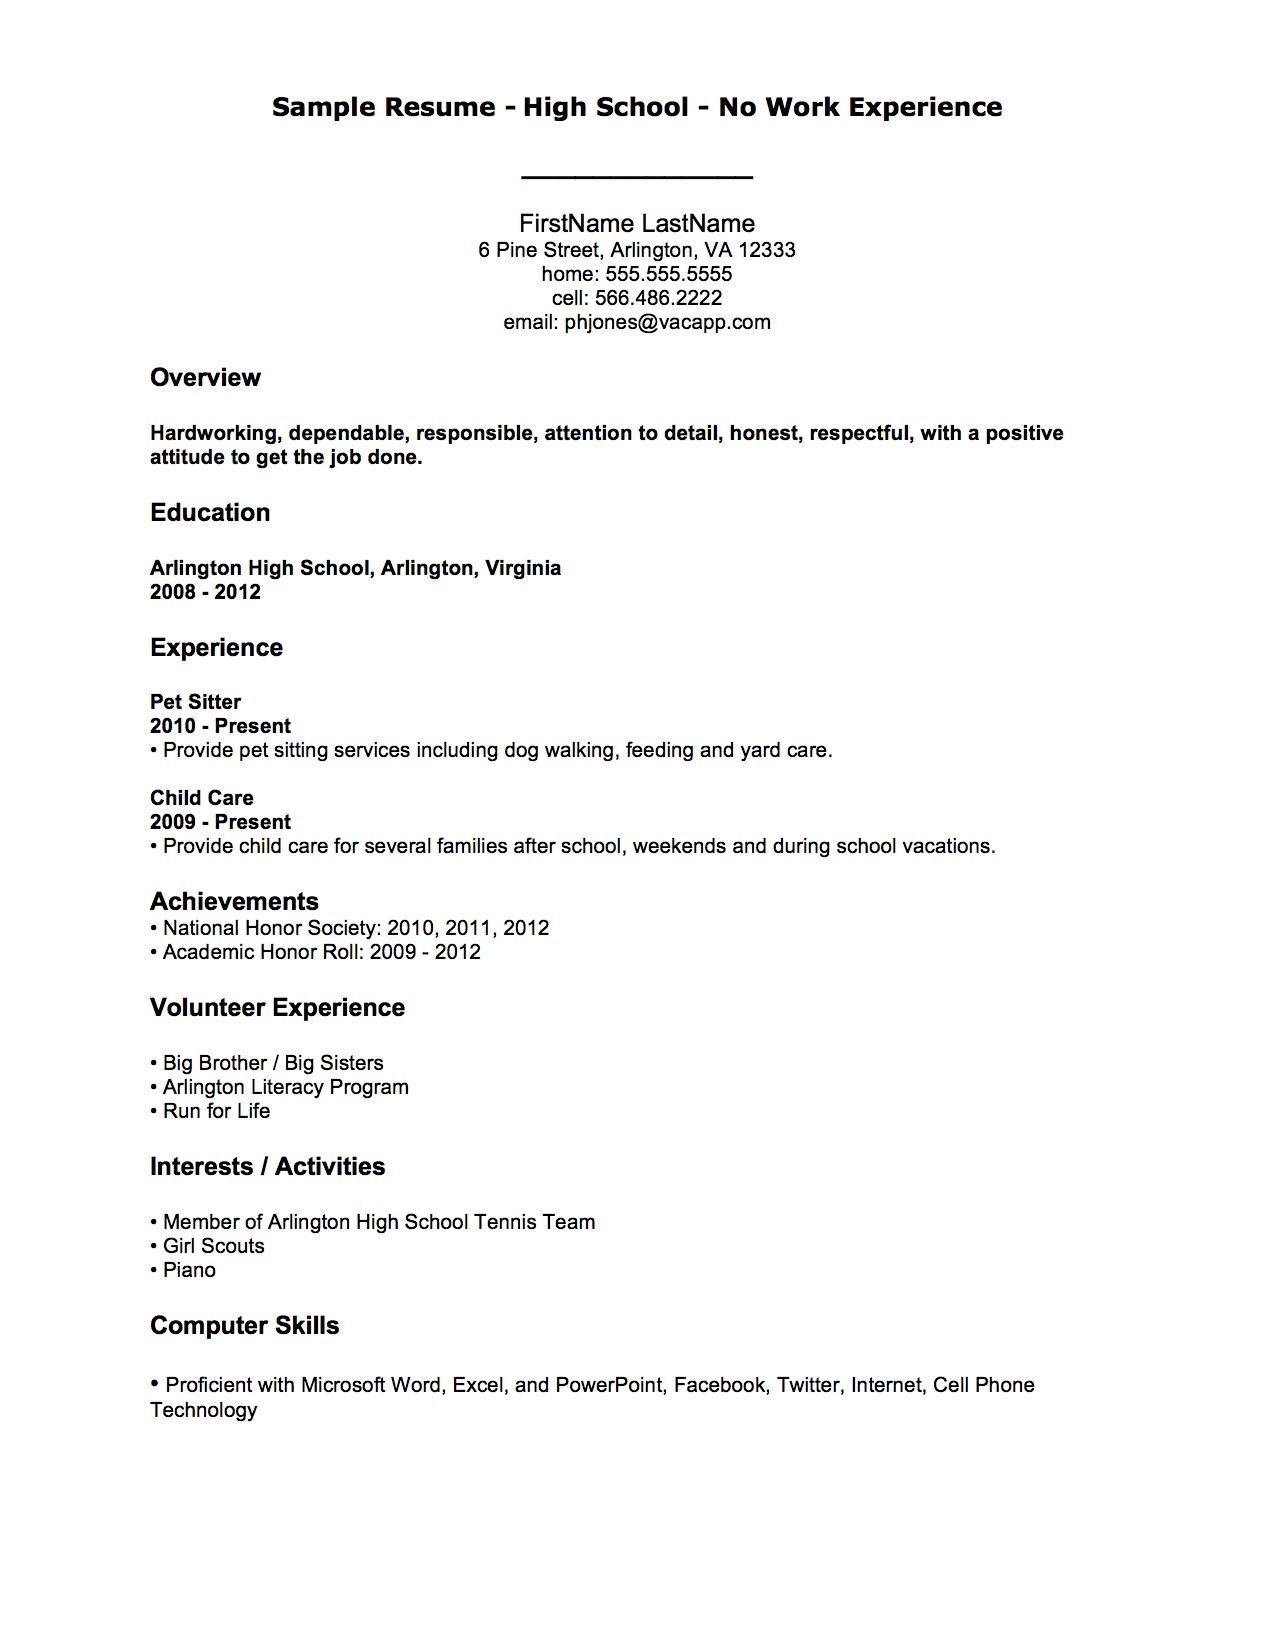 Examples Of Resumes For College Students With No Work Experience